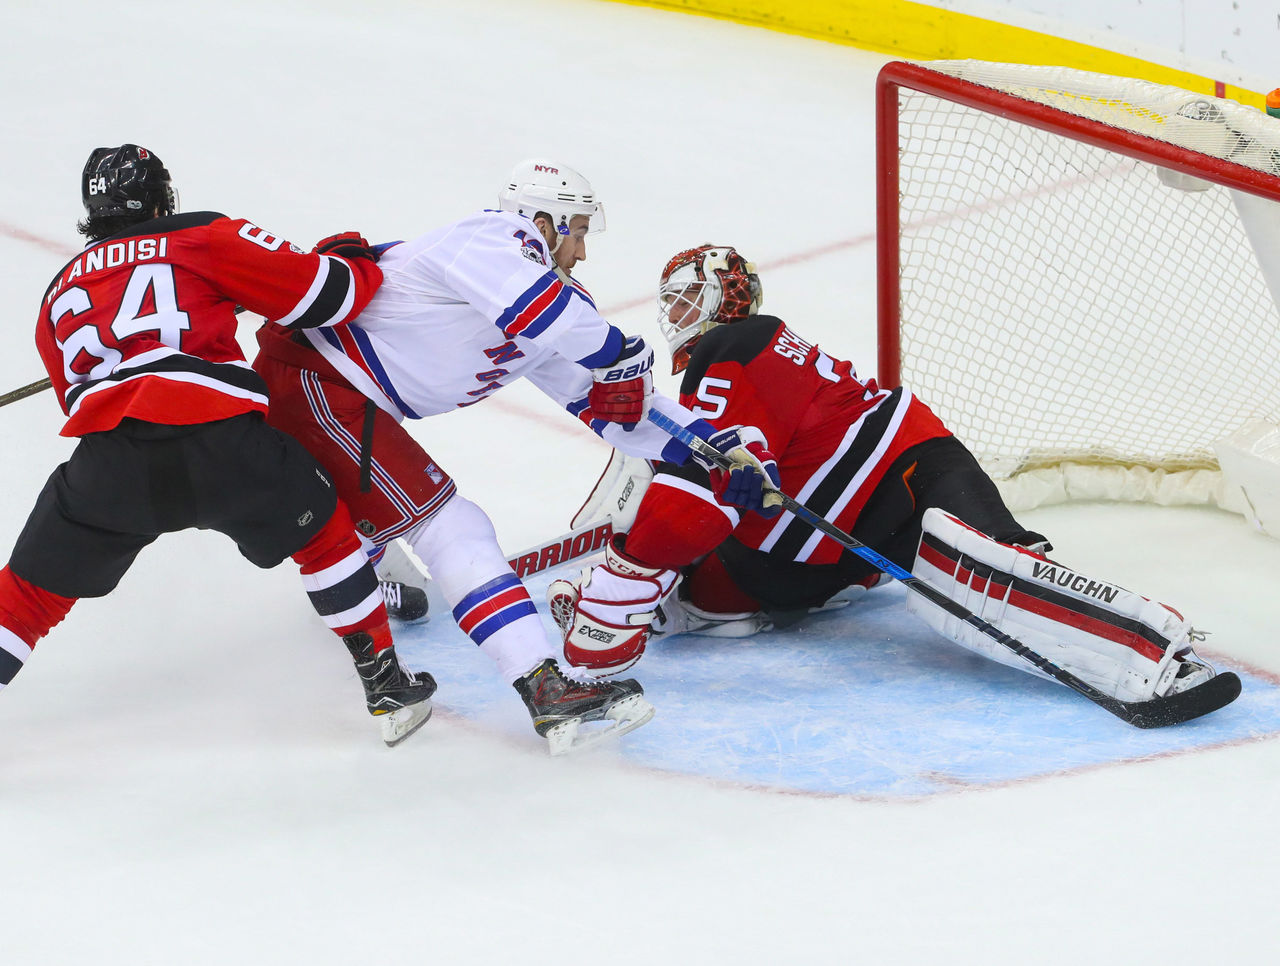 Cropped 2017 03 22t024843z 1252338767 nocid rtrmadp 3 nhl new york rangers at new jersey devils